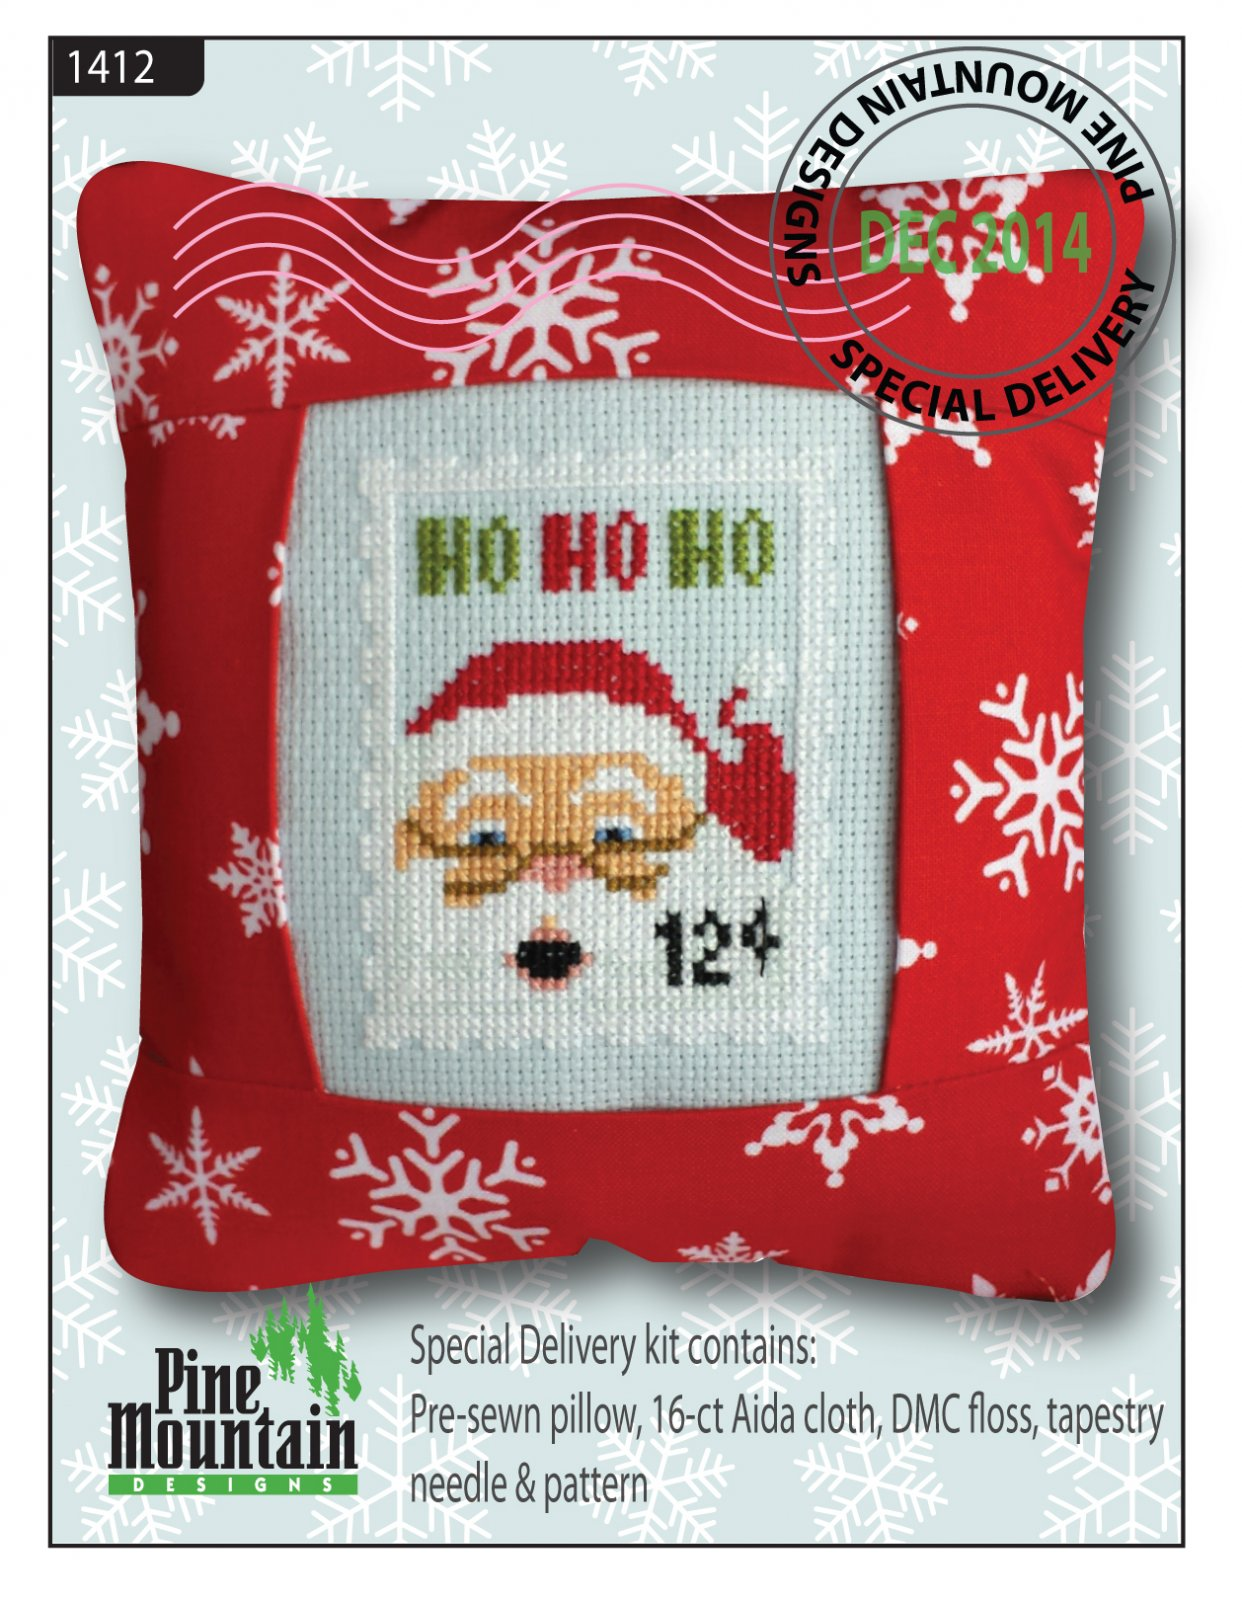 December Stamp Special Delivery pillow kit #1412